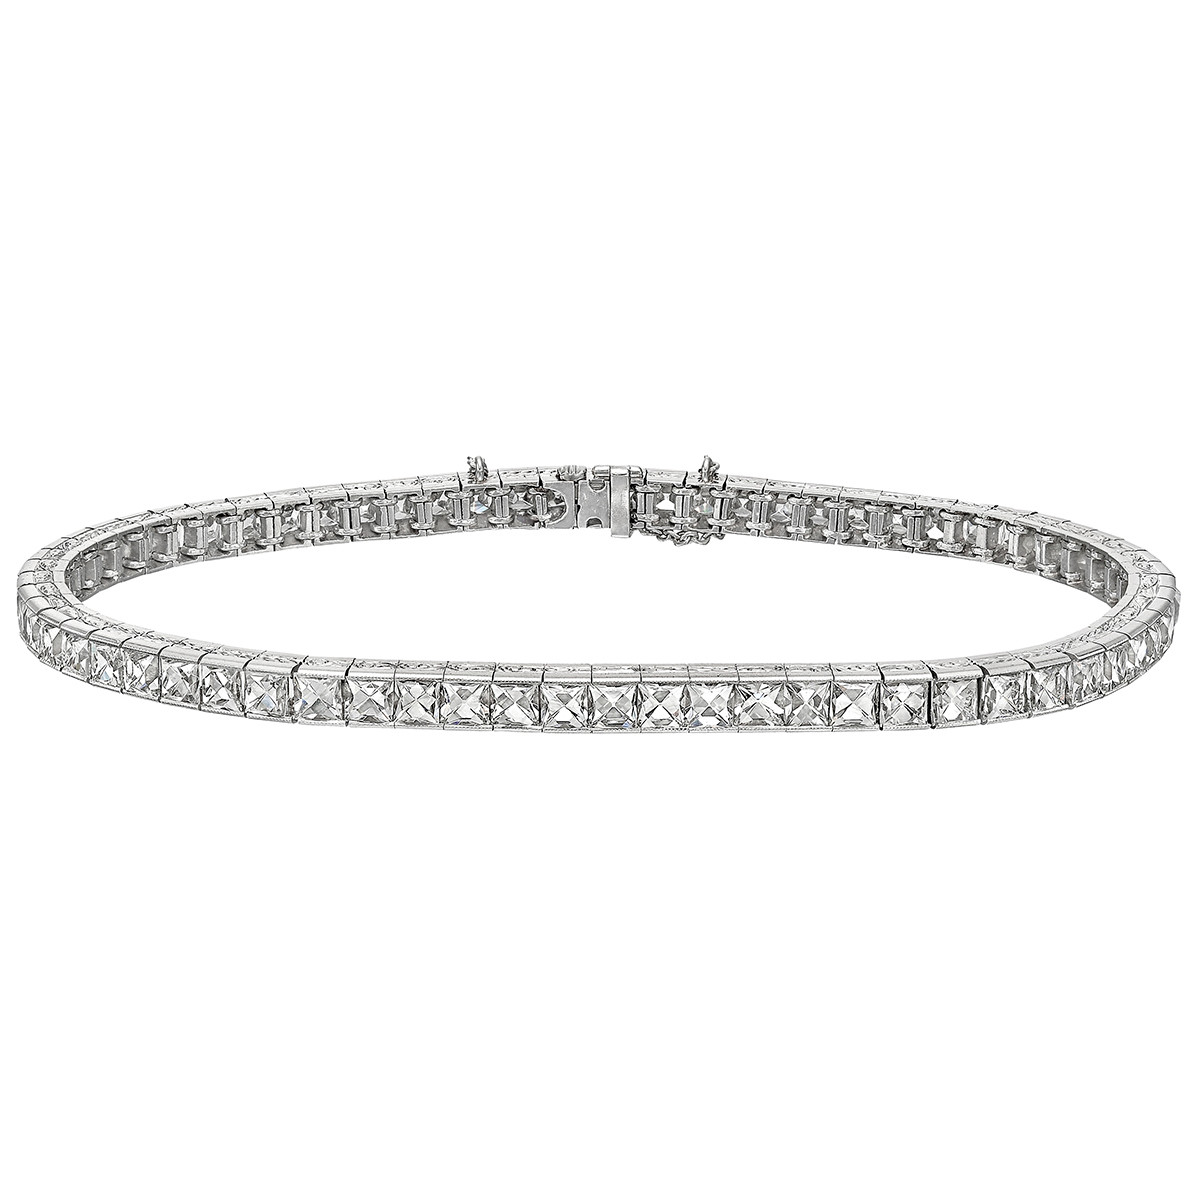 French-Cut Diamond Line Bracelet (~8.8 ct tw)